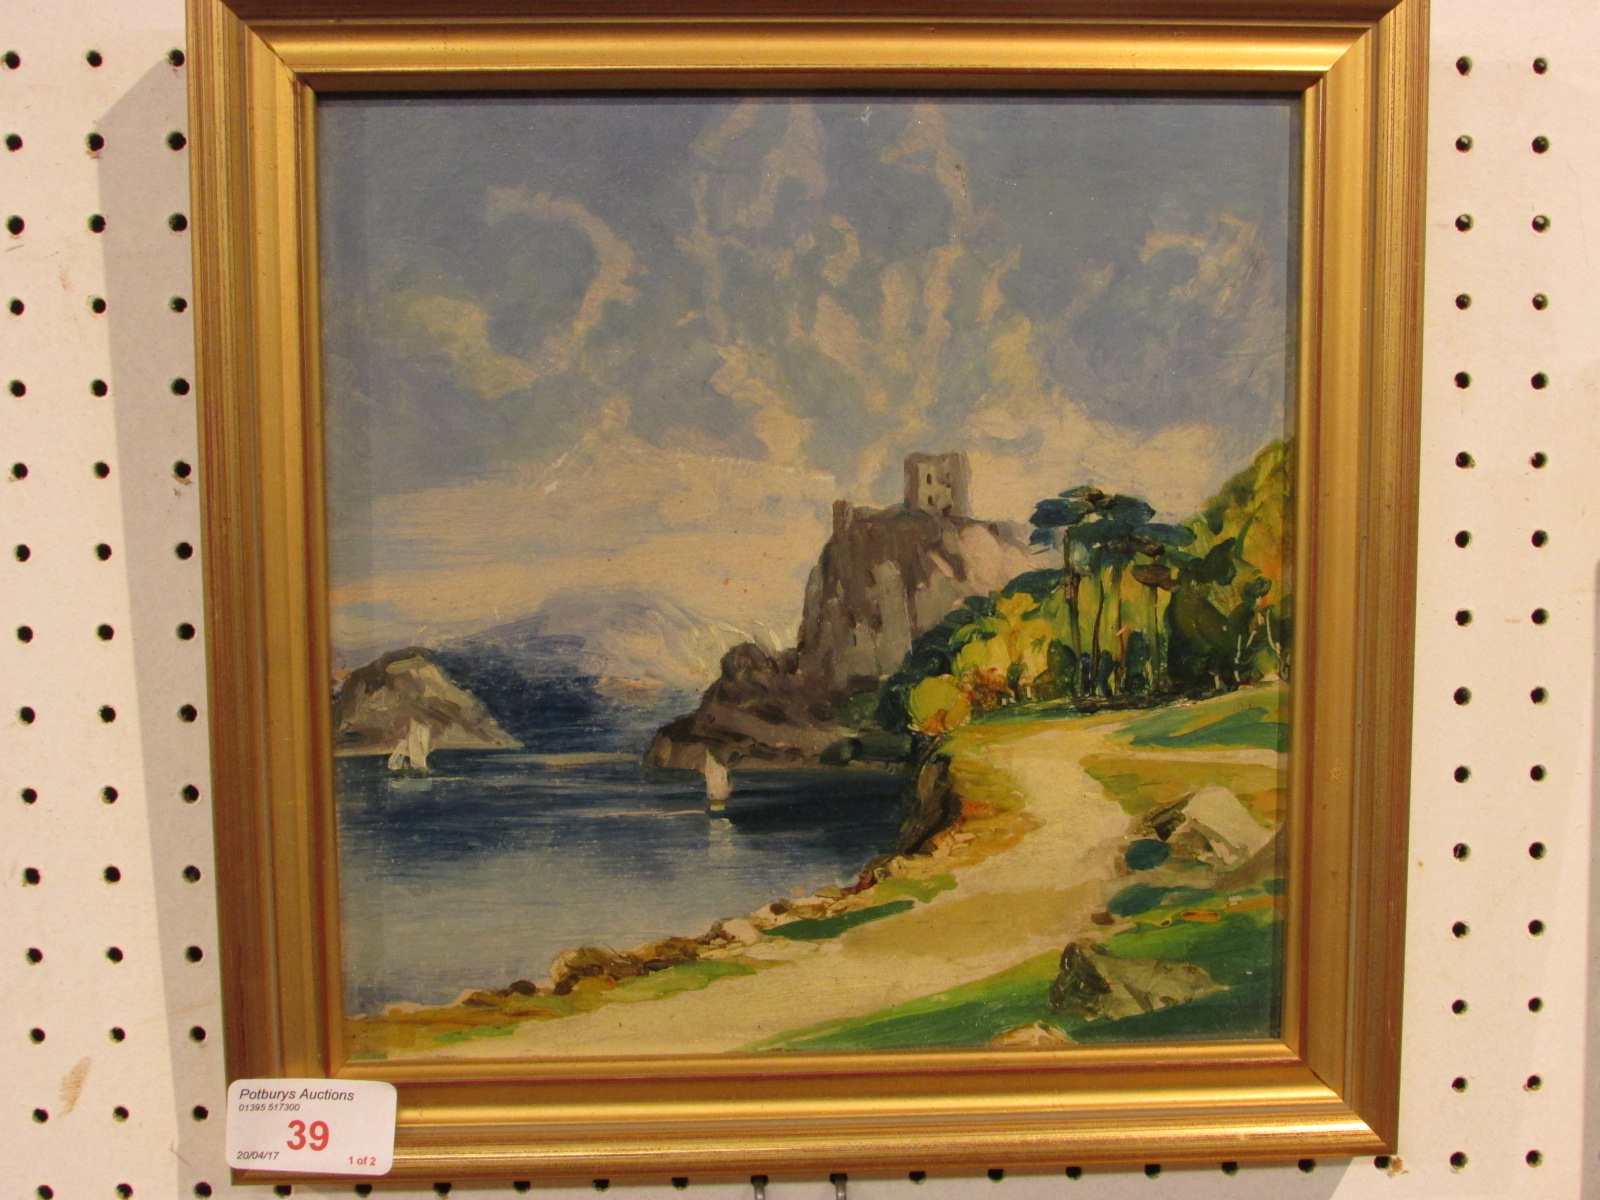 Lot 39 - Two oil on board landscapes - bridge with mountain beyond, and castle on cliff by coast, each 22cm x